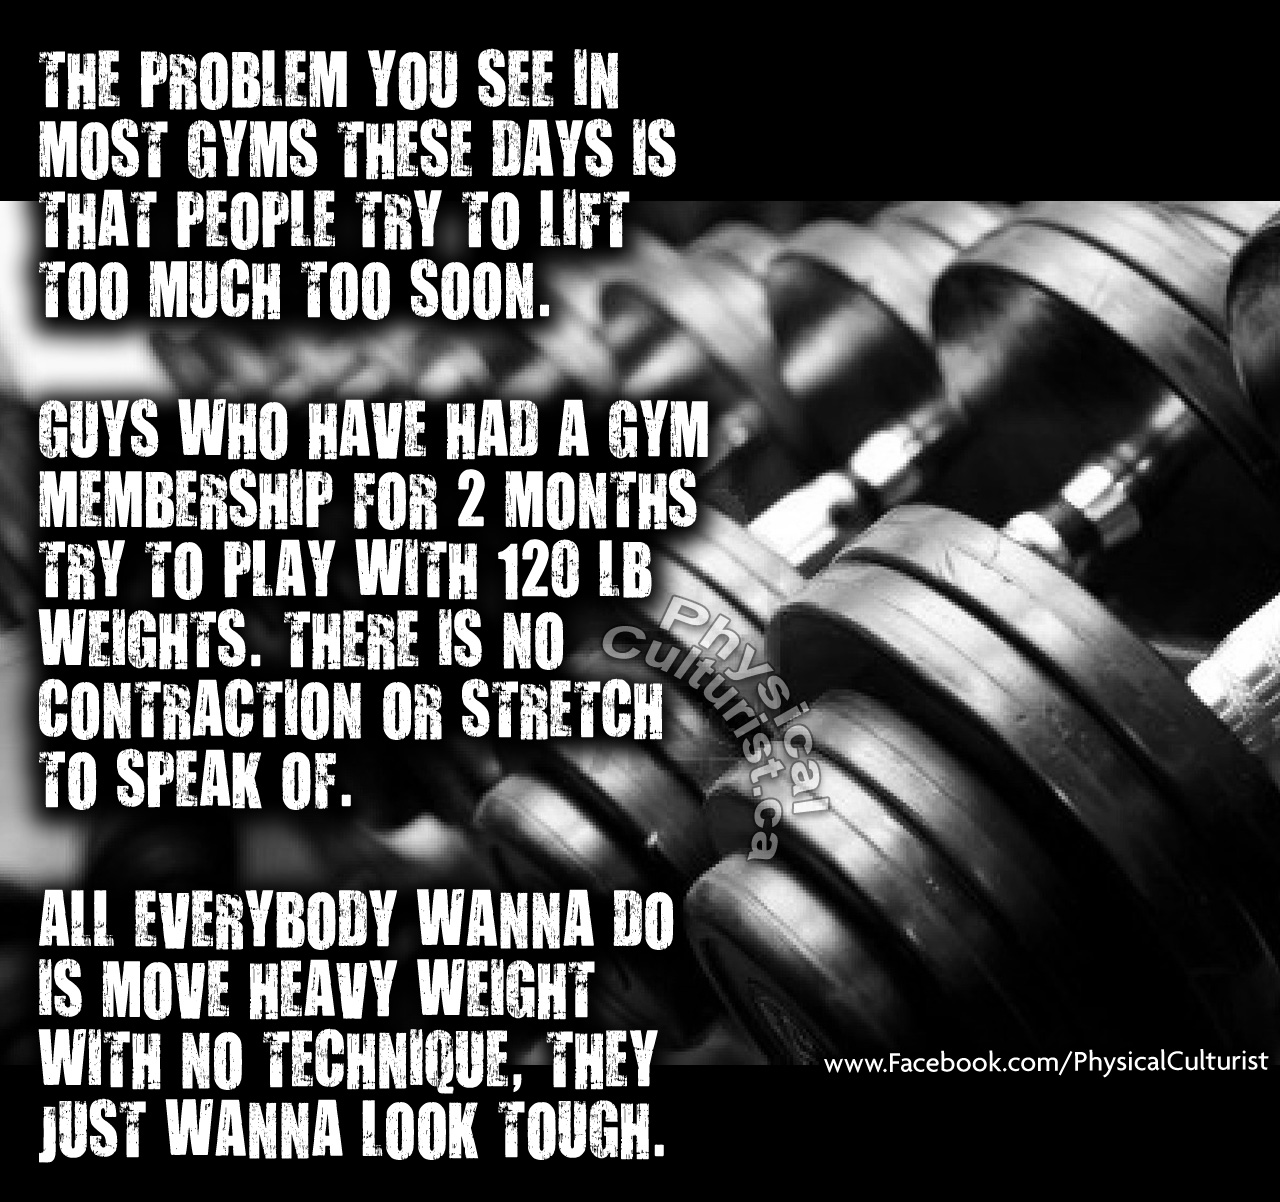 THE PROBLEM YOU SEE IN MOST GYMS THESE DAYS IS THAT PEOPLE TRY TO LIFT TOO MUCH TOO SOON. GUYS WHO HAVE HAD A GYM MEMBERSHIP FOR 2 MONTHS TRY TO PLAY WITH 120 LB WEIGHTS. THERE IS NO CONTRACTION OR STRETCH TO SPEAK OF. ALL EVERYBODY WANNA DO IS MOVE HEAVY WEIGHT WITH NO TECHNIQUE, THEY JUST WANNA LOOK TOUGH.